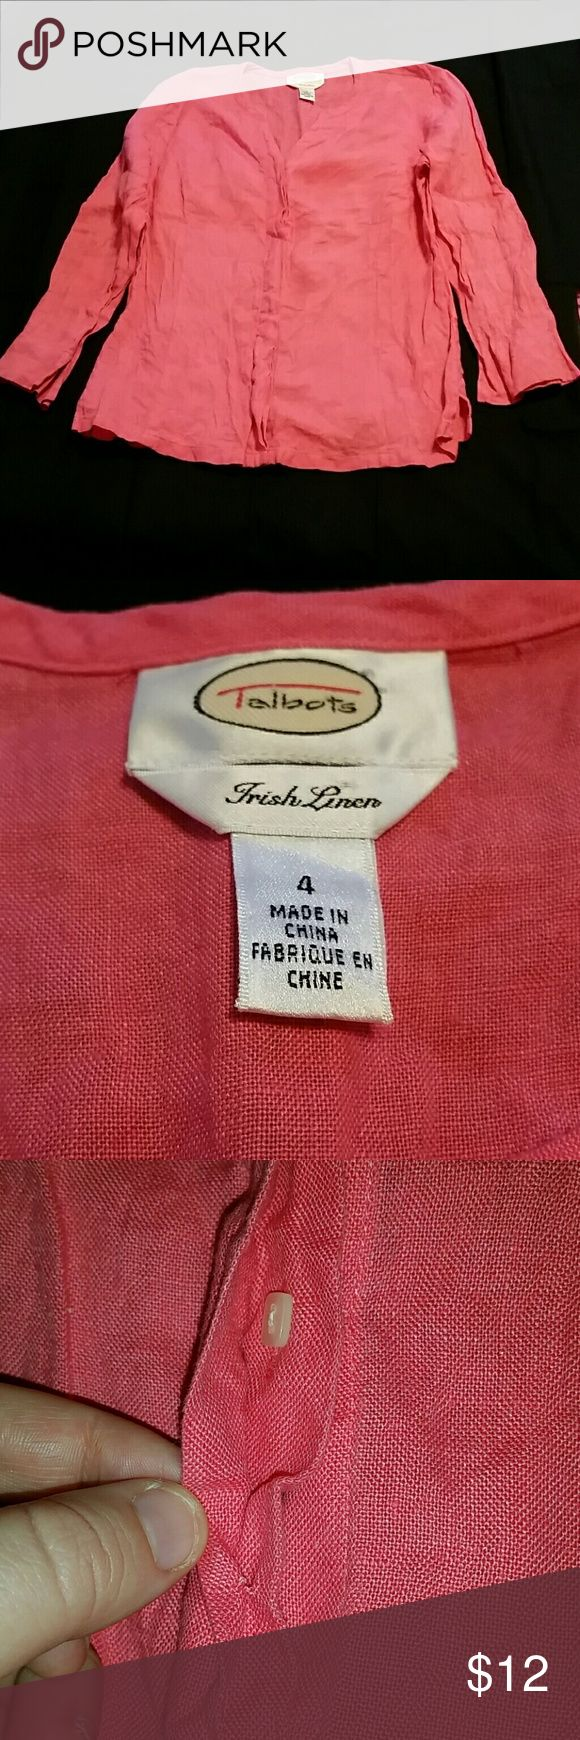 Talbots size 4 coral blouse Talbots size 4 coral blouse. Made from 100% linen. Similar to a beach cover up! Small stain on left sleeve as shown above Talbots Tops